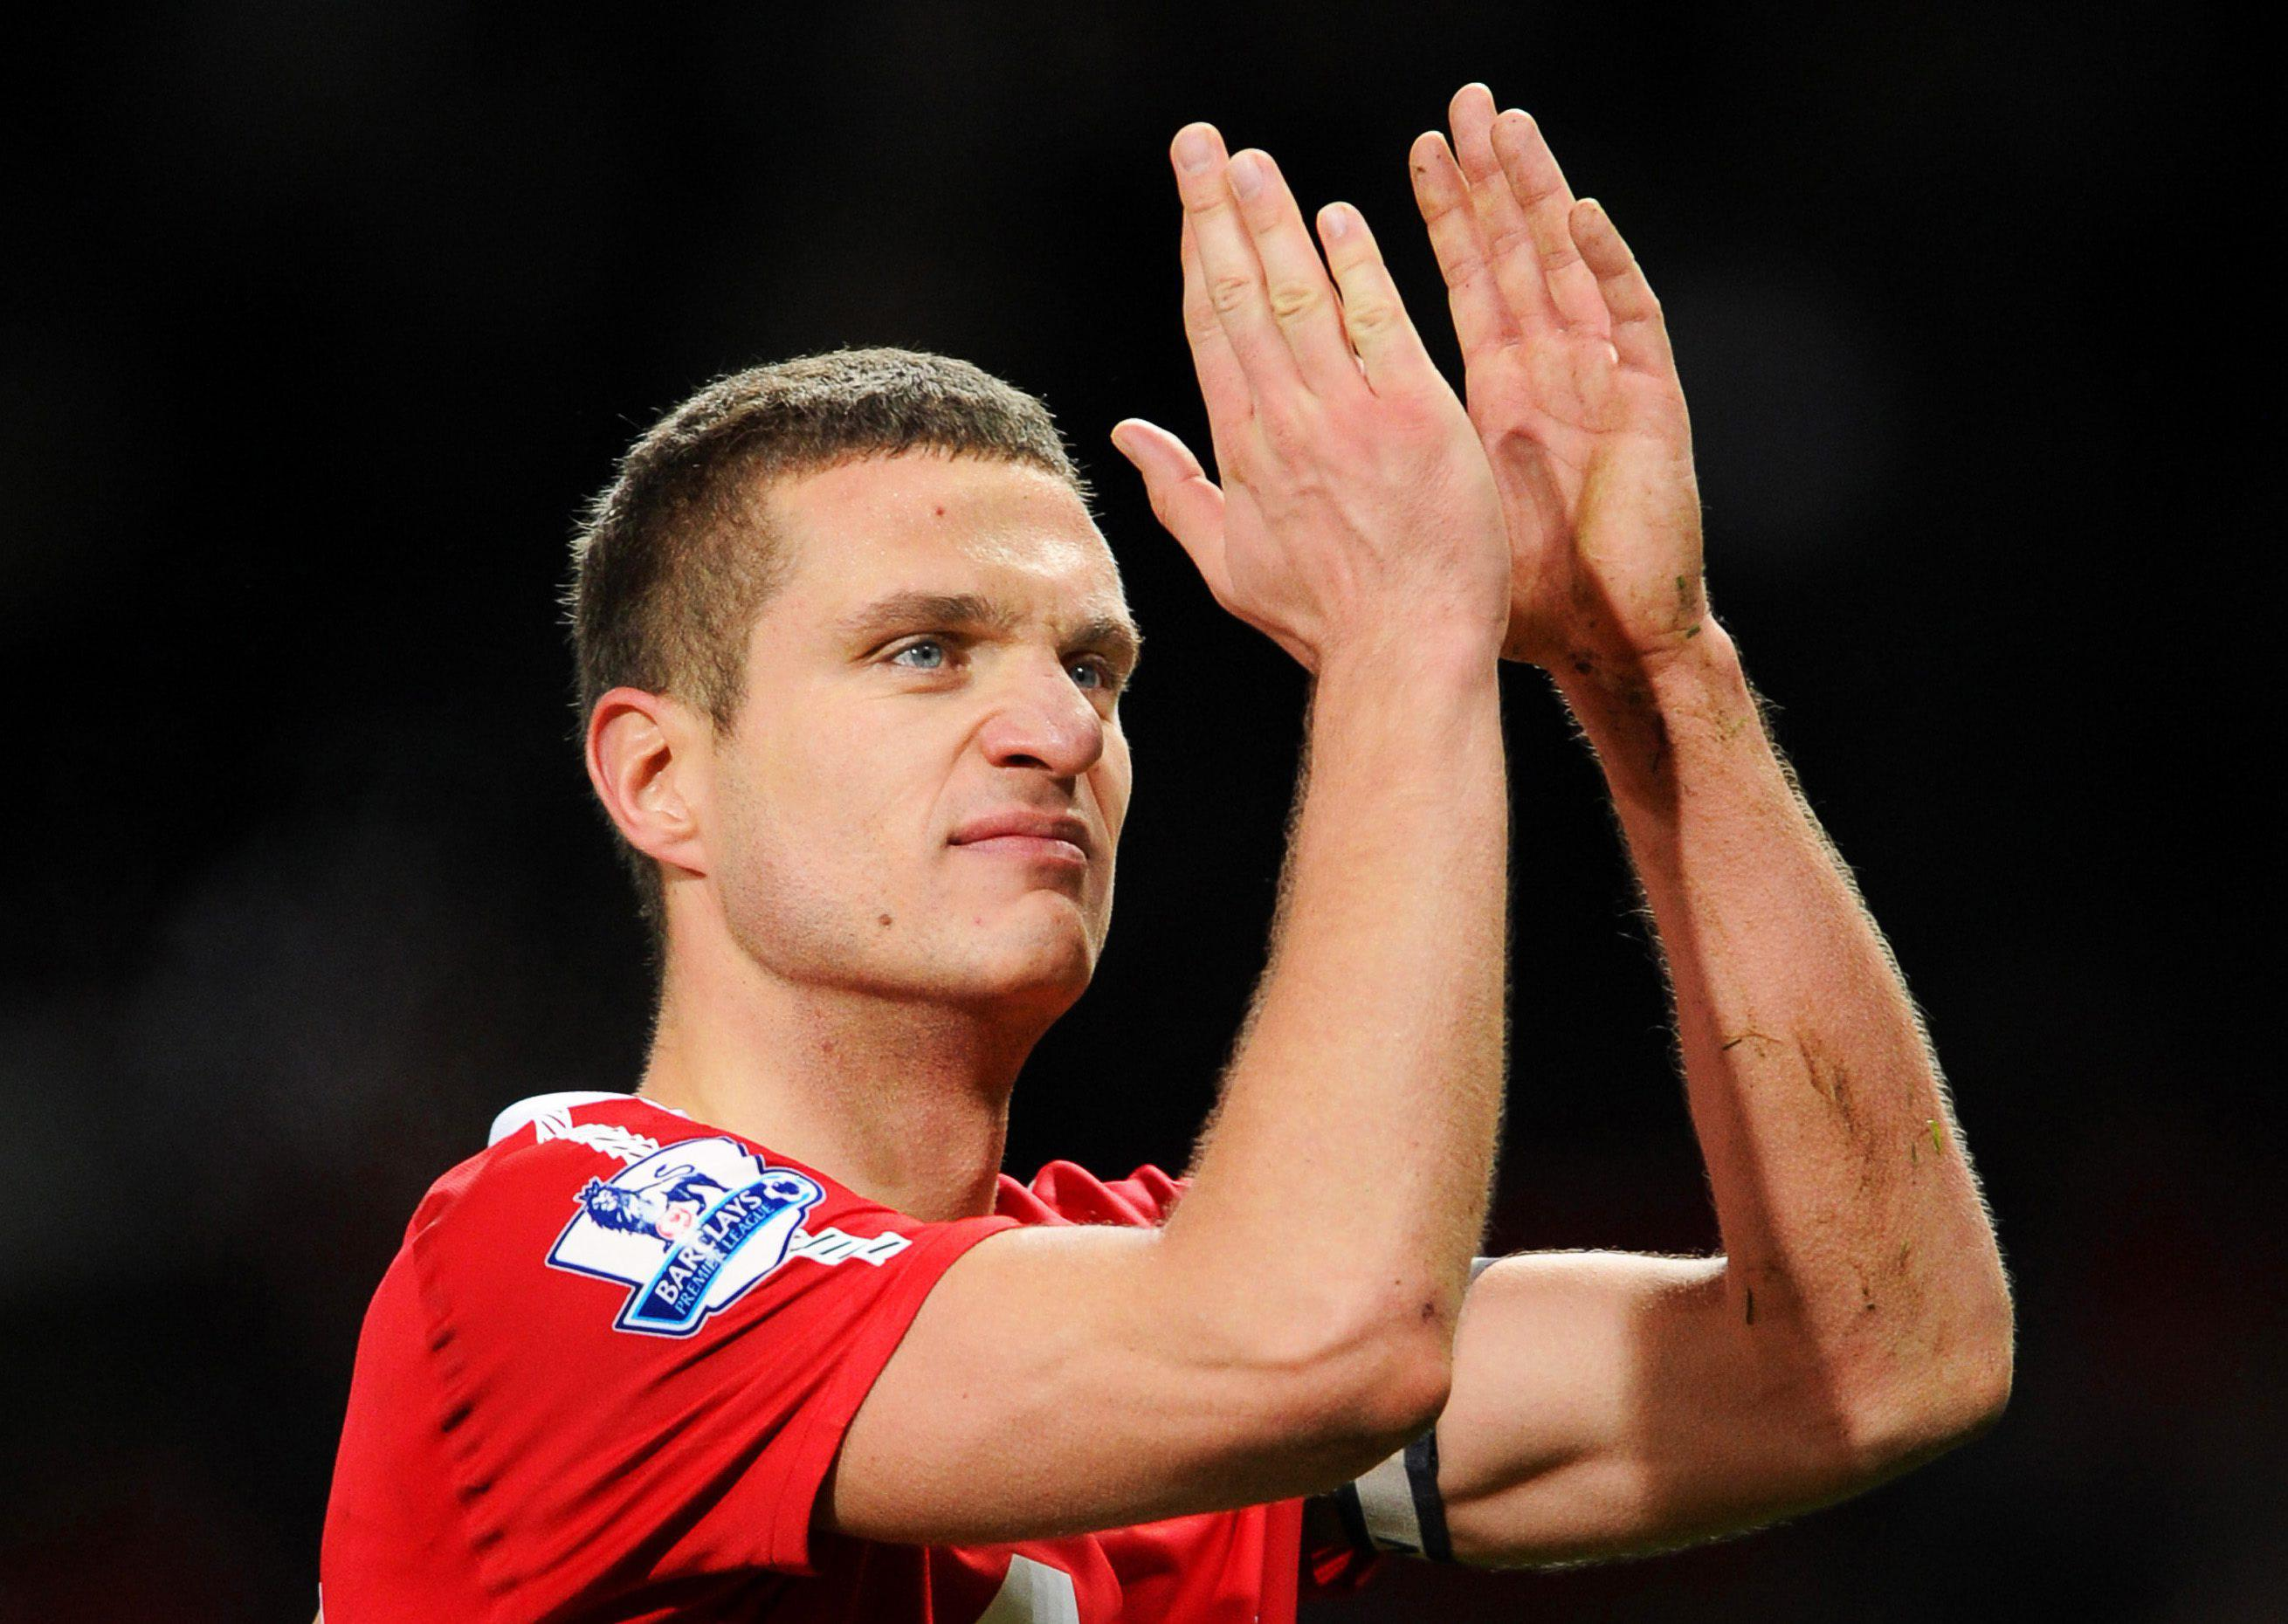 Vidic had a tough start to life in England